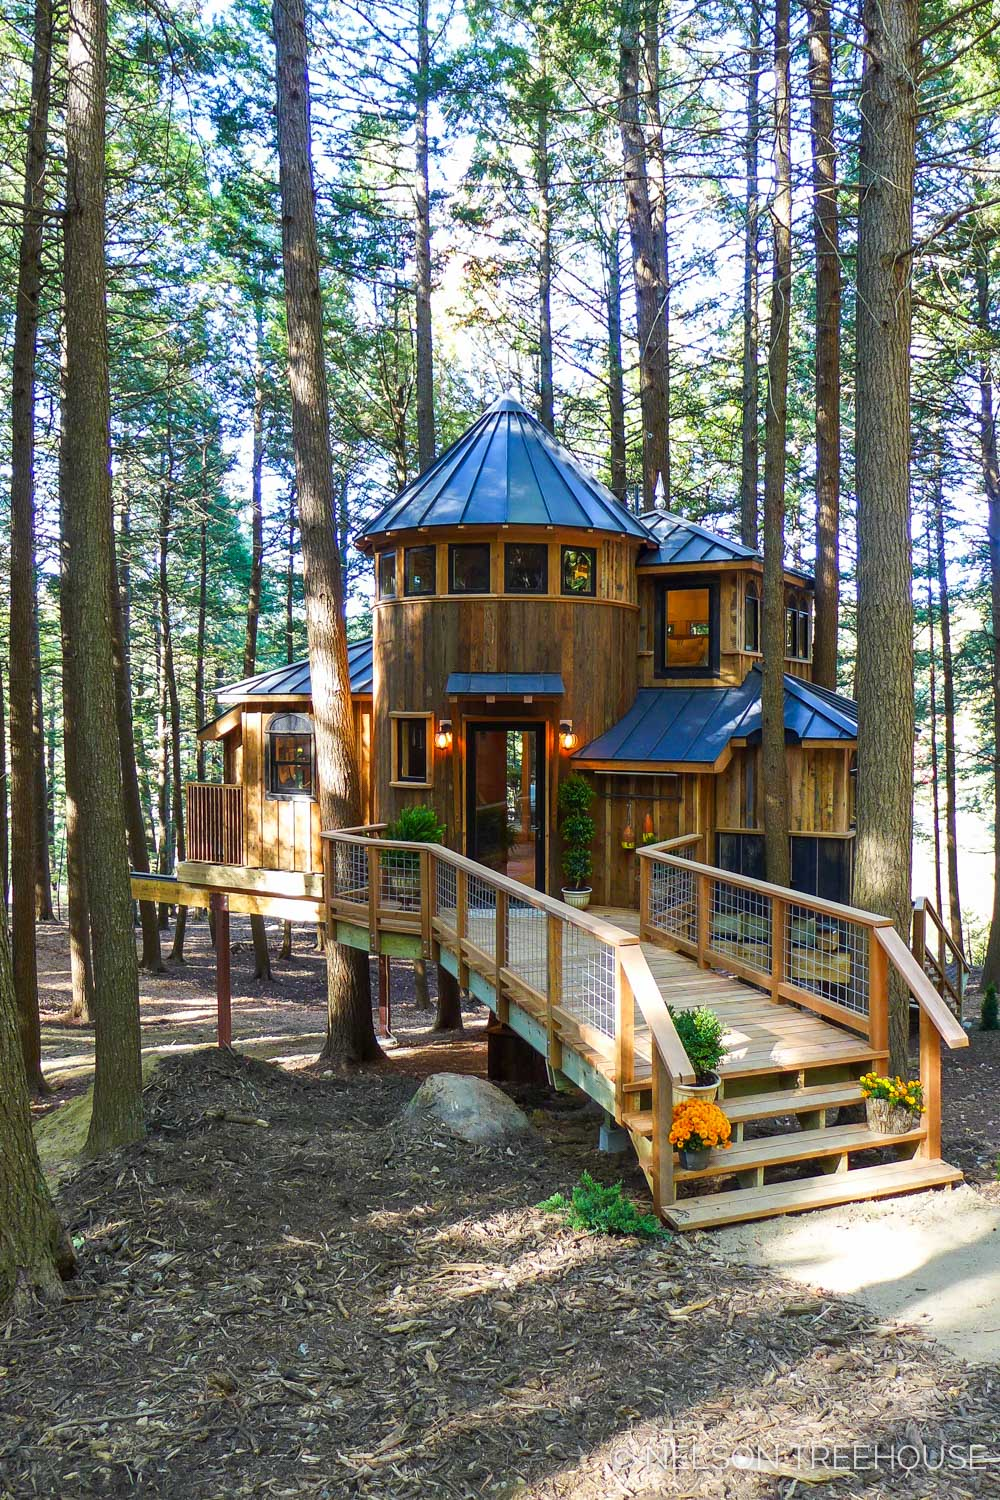 MAGICAL MAINE GETAWAY    Location:  Maine  Year Built:  2017  Square Feet:  600  Elevation:  15 ft Combination tree- and steel-supported  Seasonality:  All-season    CLICK FOR PHOTO TOUR >>